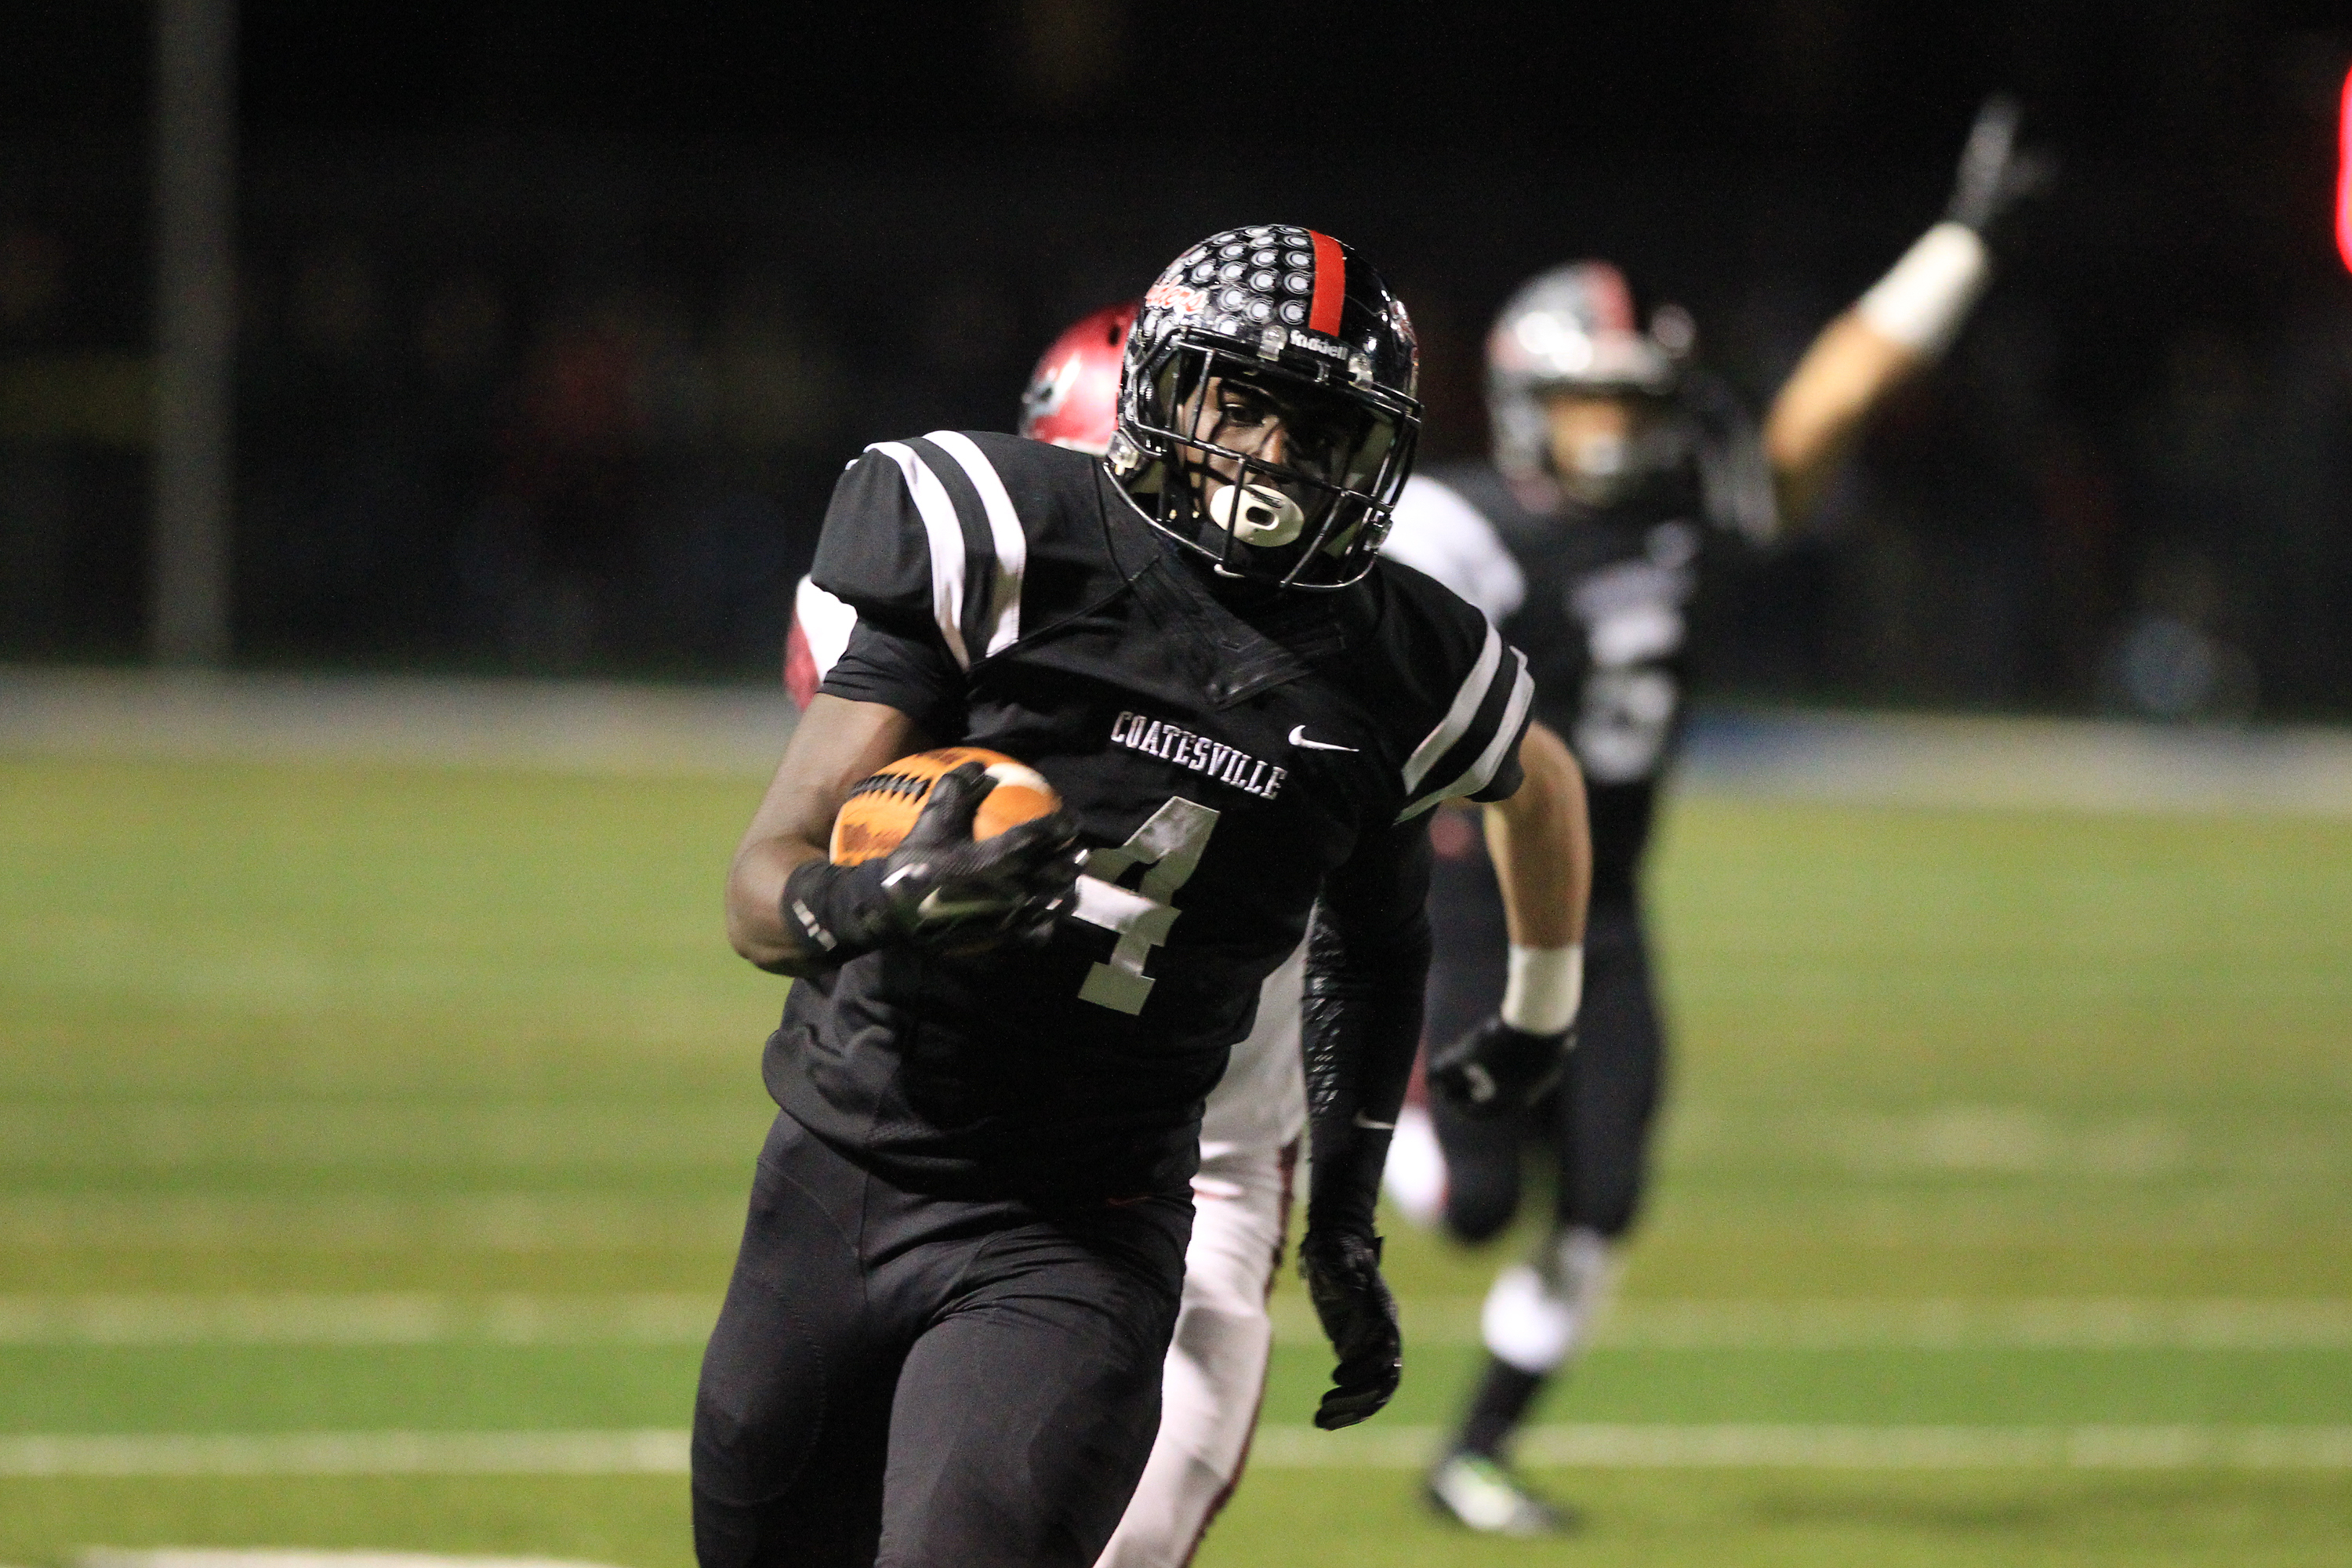 Coatesville´s Aaron Young runs for a long gain against St. Joseph's Prep in last season´s PIAA Class 6A state semifinal.